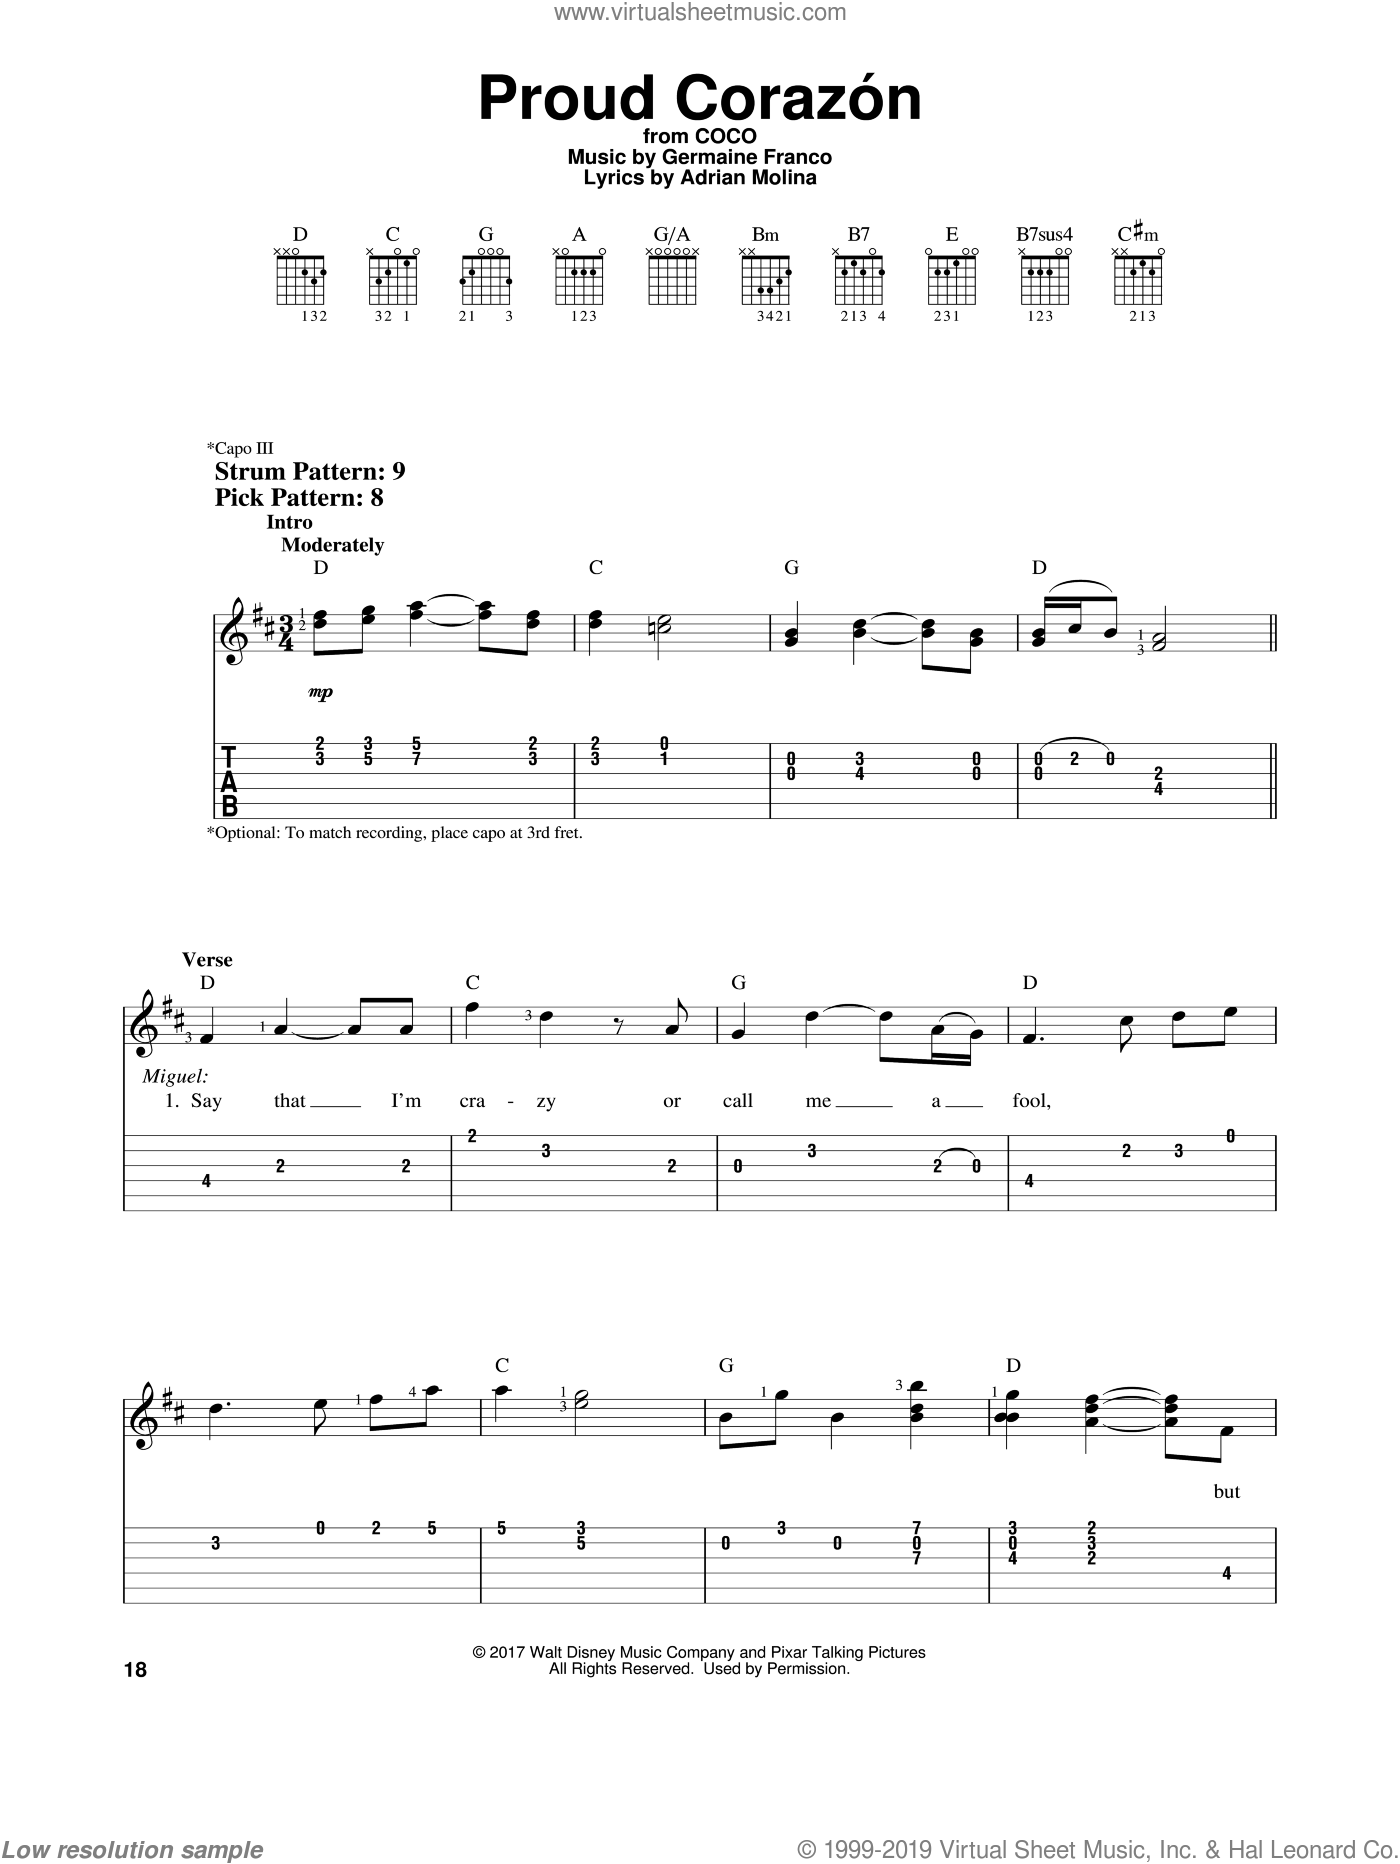 Proud Corazon sheet music for guitar solo (easy tablature) by Adrian Molina, Coco (Movie) and Germaine Franco, easy guitar (easy tablature)